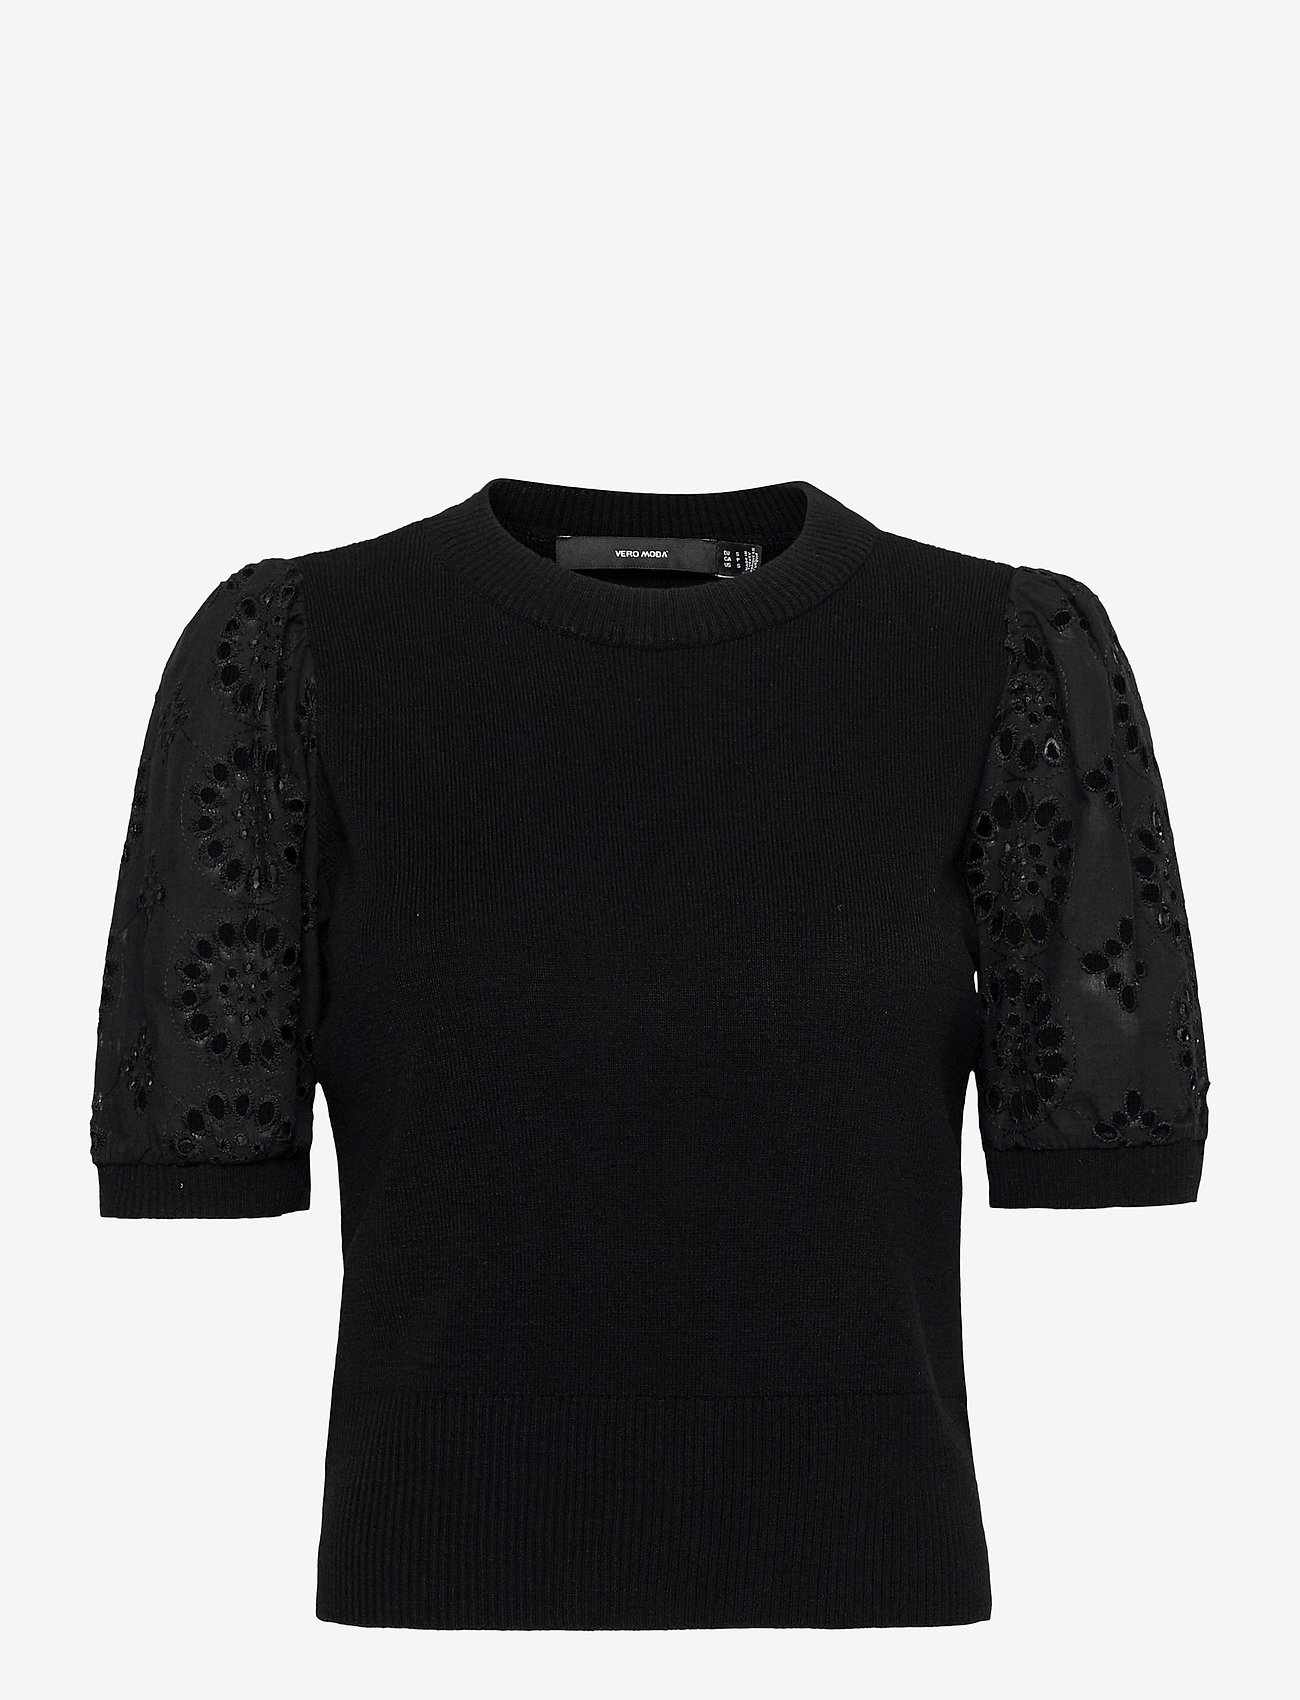 Vero Moda - VMNEWFLOWERS SS O-NECK BLOUSE - stickade toppar - black - 0